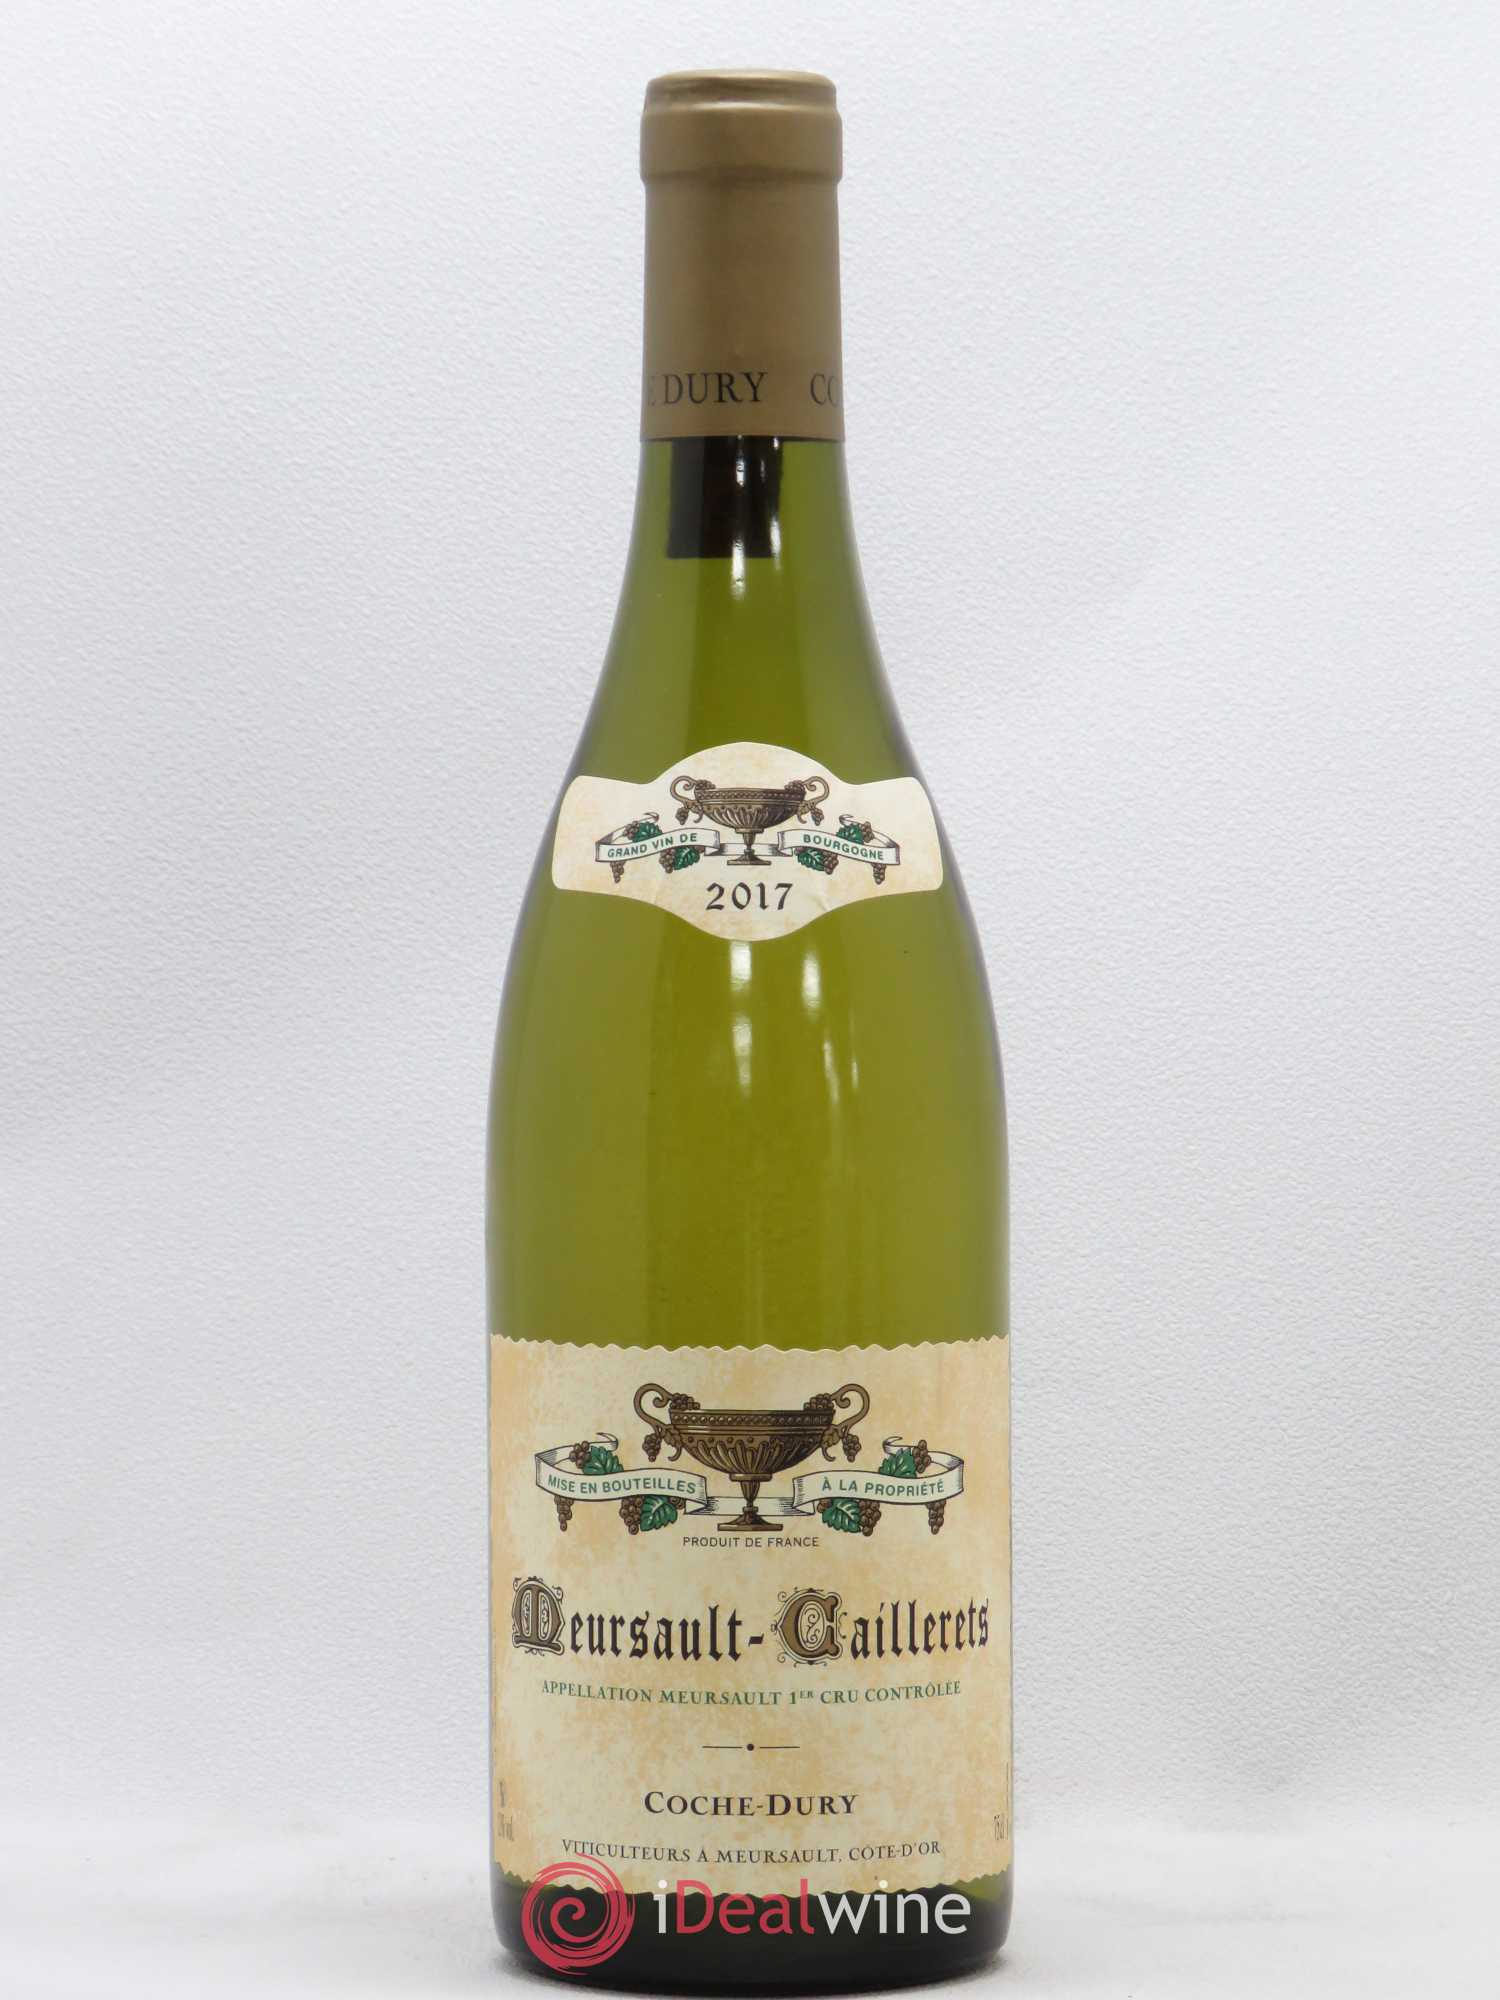 Meursault 1er Cru Caillerets Coche Dury (Domaine)  2017 - Lot of 1 Bottle